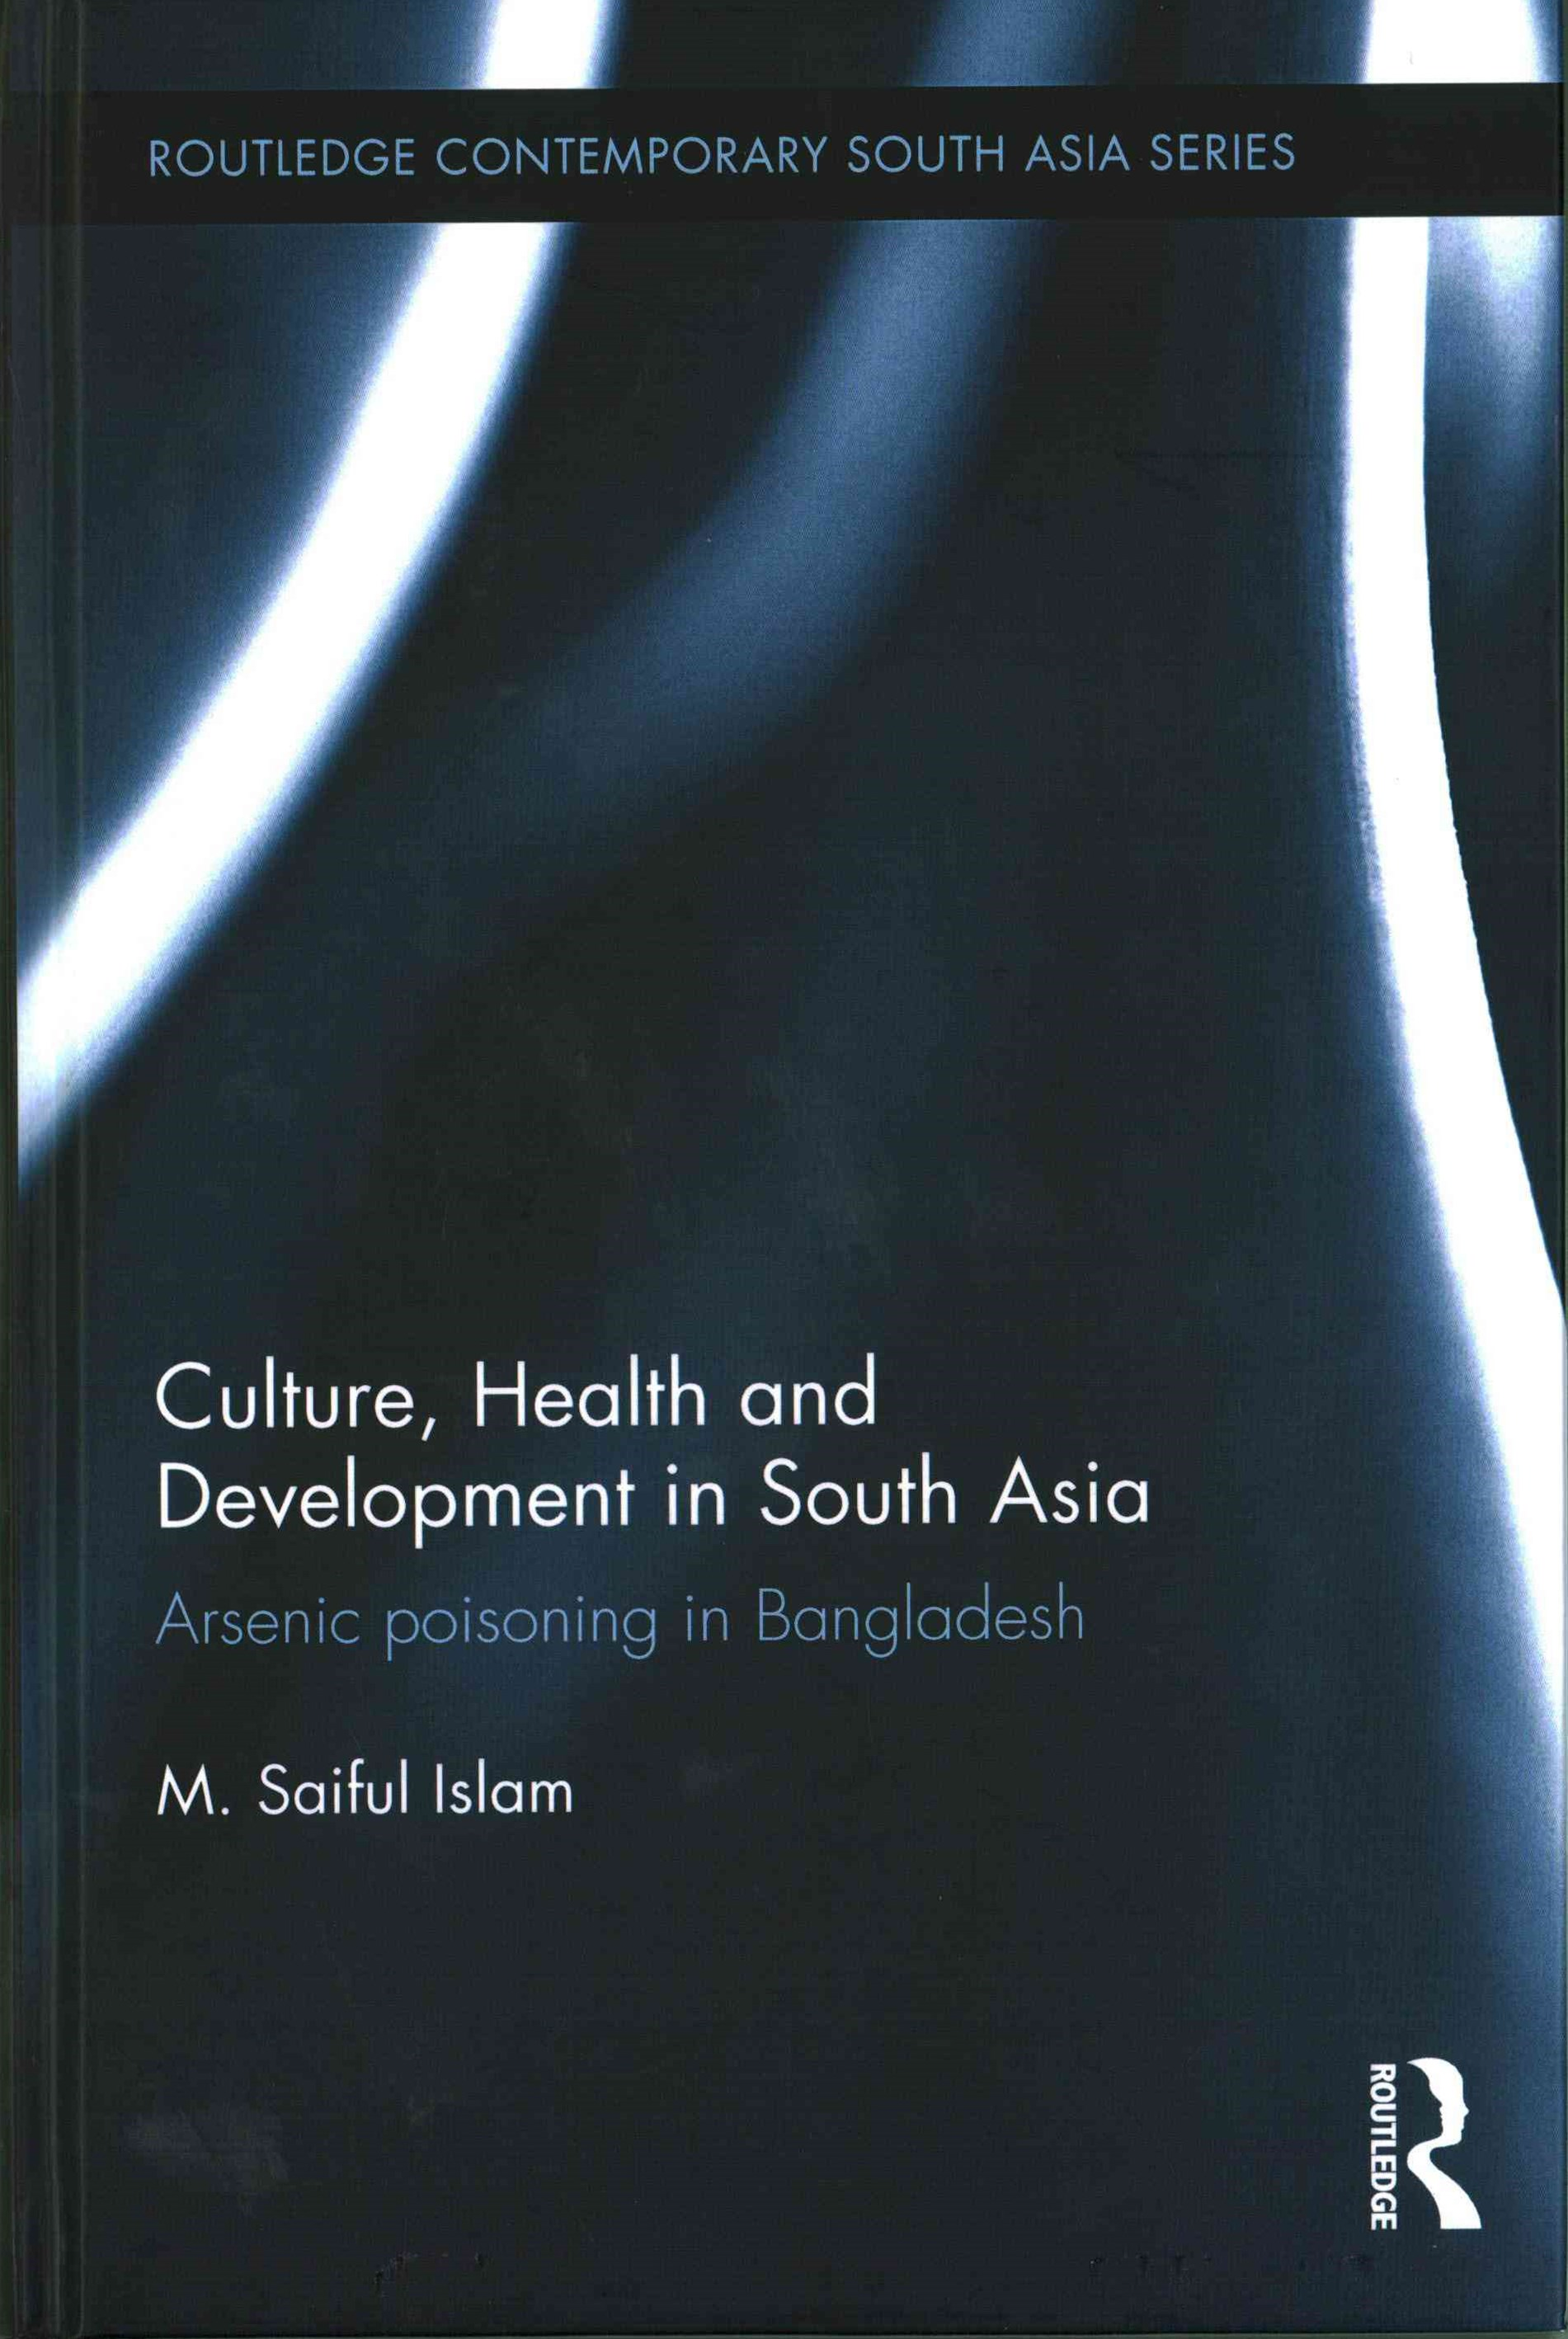 Culture, Health and Development in South Asia